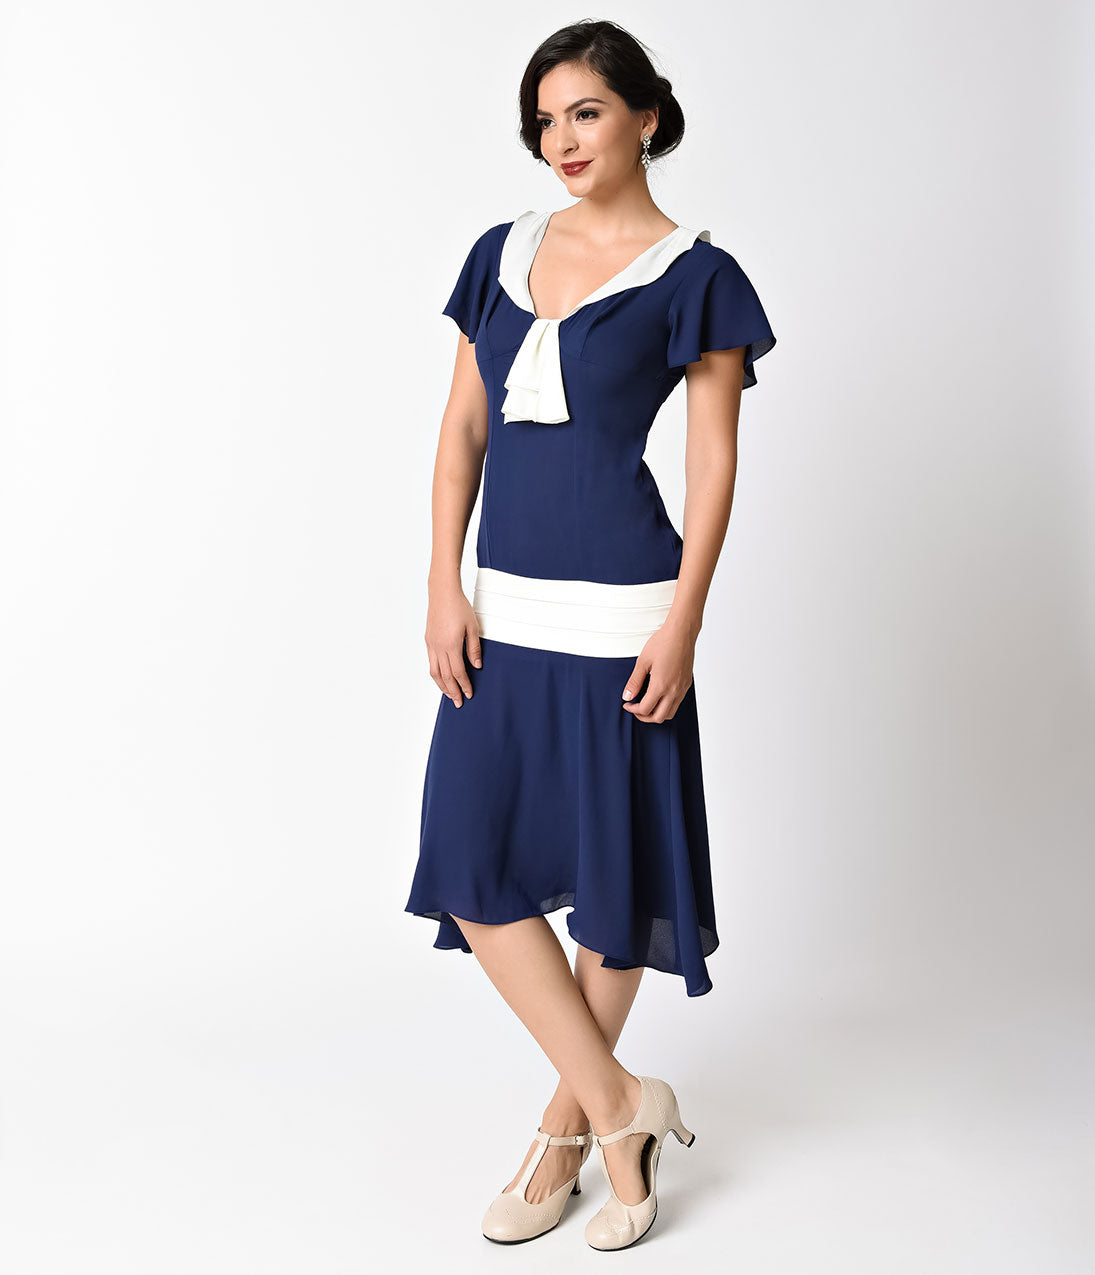 1920s Afternoon Dresses, Tea Dresses Unique Vintage 1920S Style Navy Blue  Ivory Wilshire Chiffon Flapper Day Dress $88.00 AT vintagedancer.com